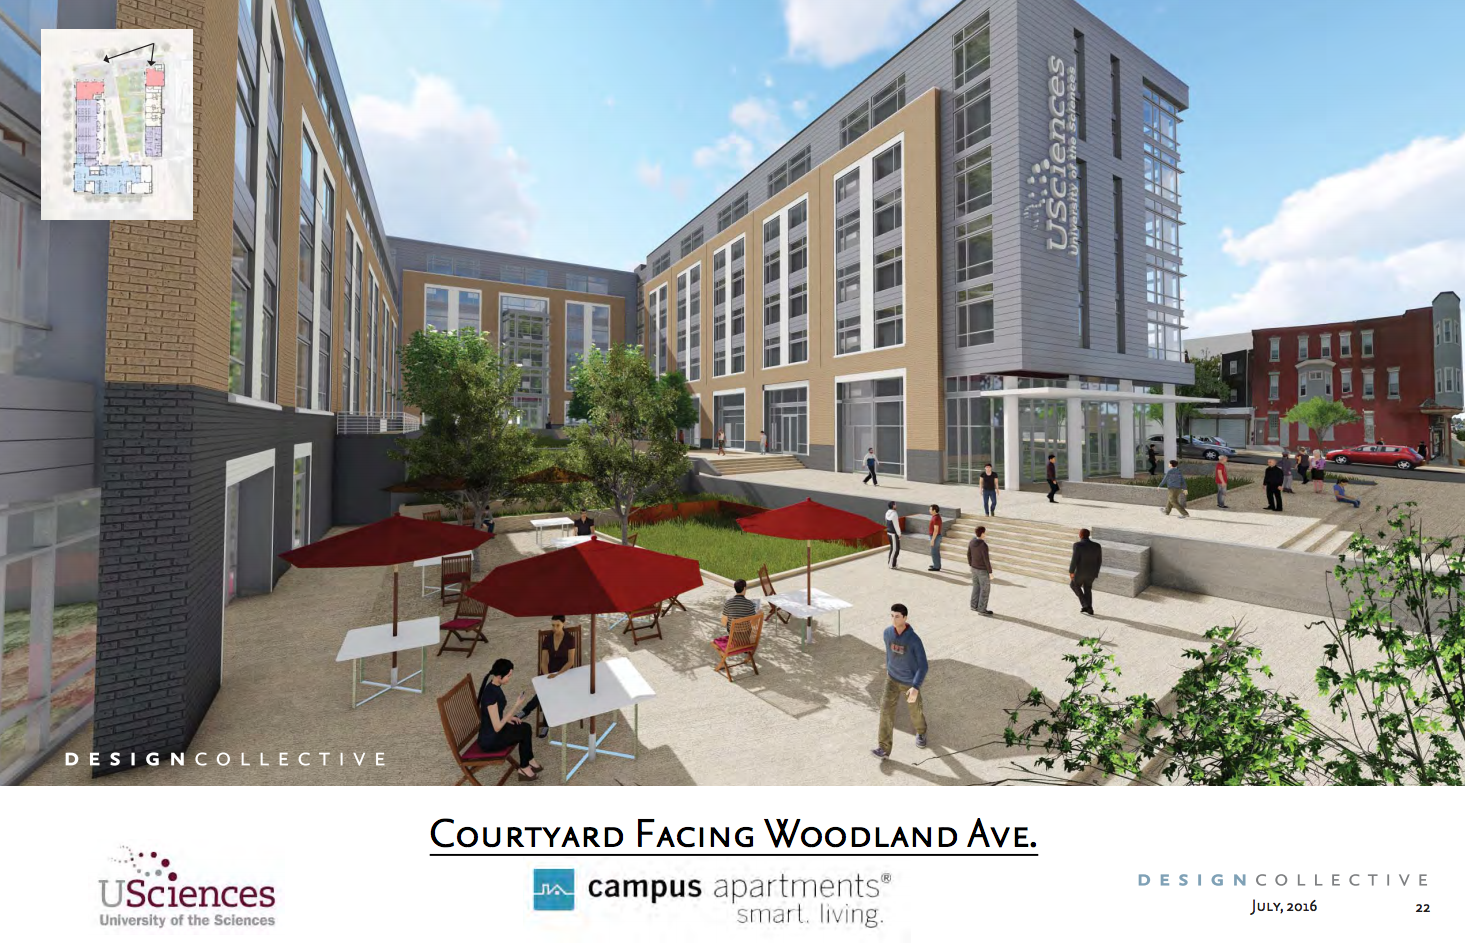 USciences residence hall courtyard facing woodland | August 2016 CDR | Design Collective